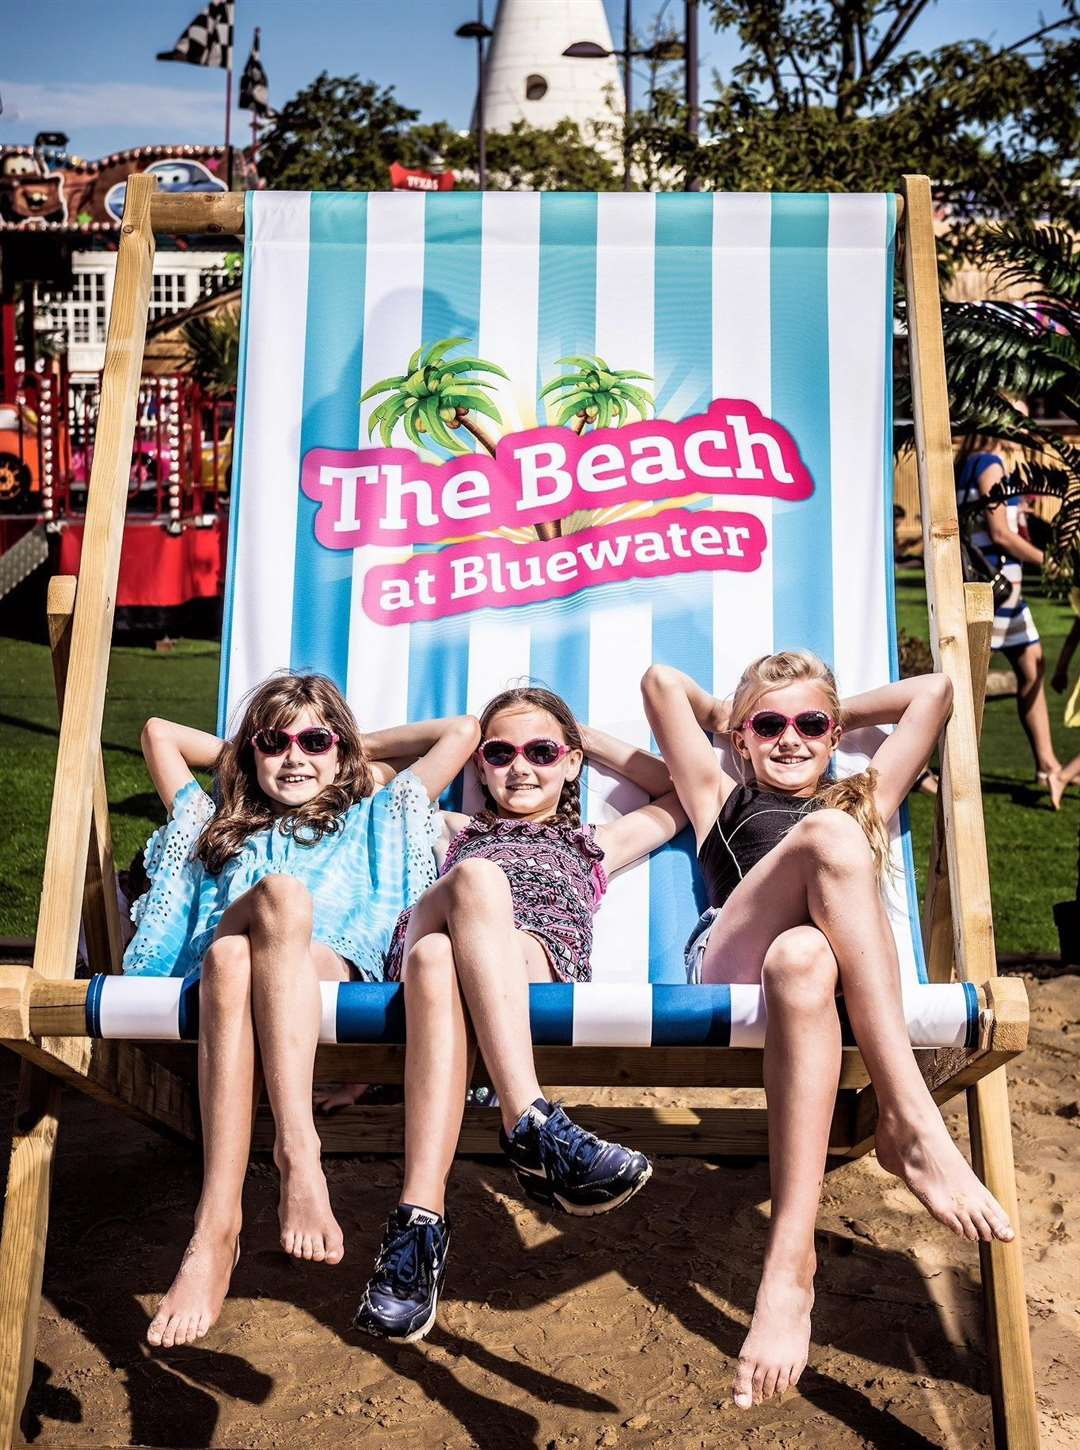 The Beach will be at Bluewater throughout the summer holidays